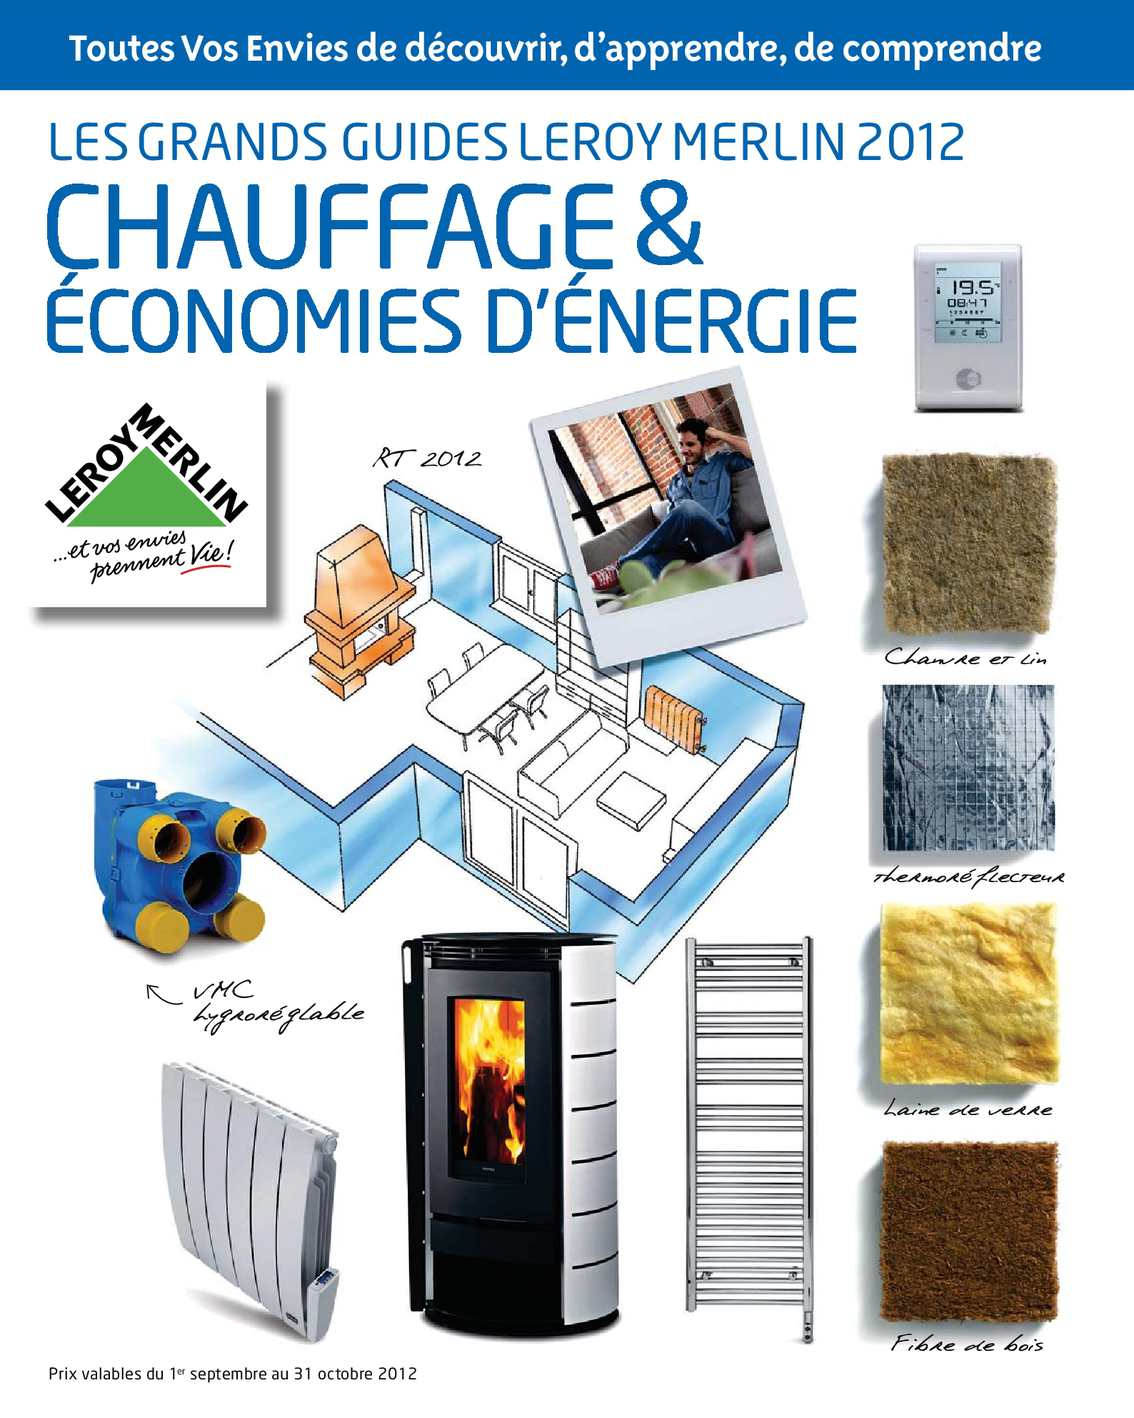 Colle Thermofusible Leroy Merlin calaméo - catalogue chauffage leroy merlin 2012